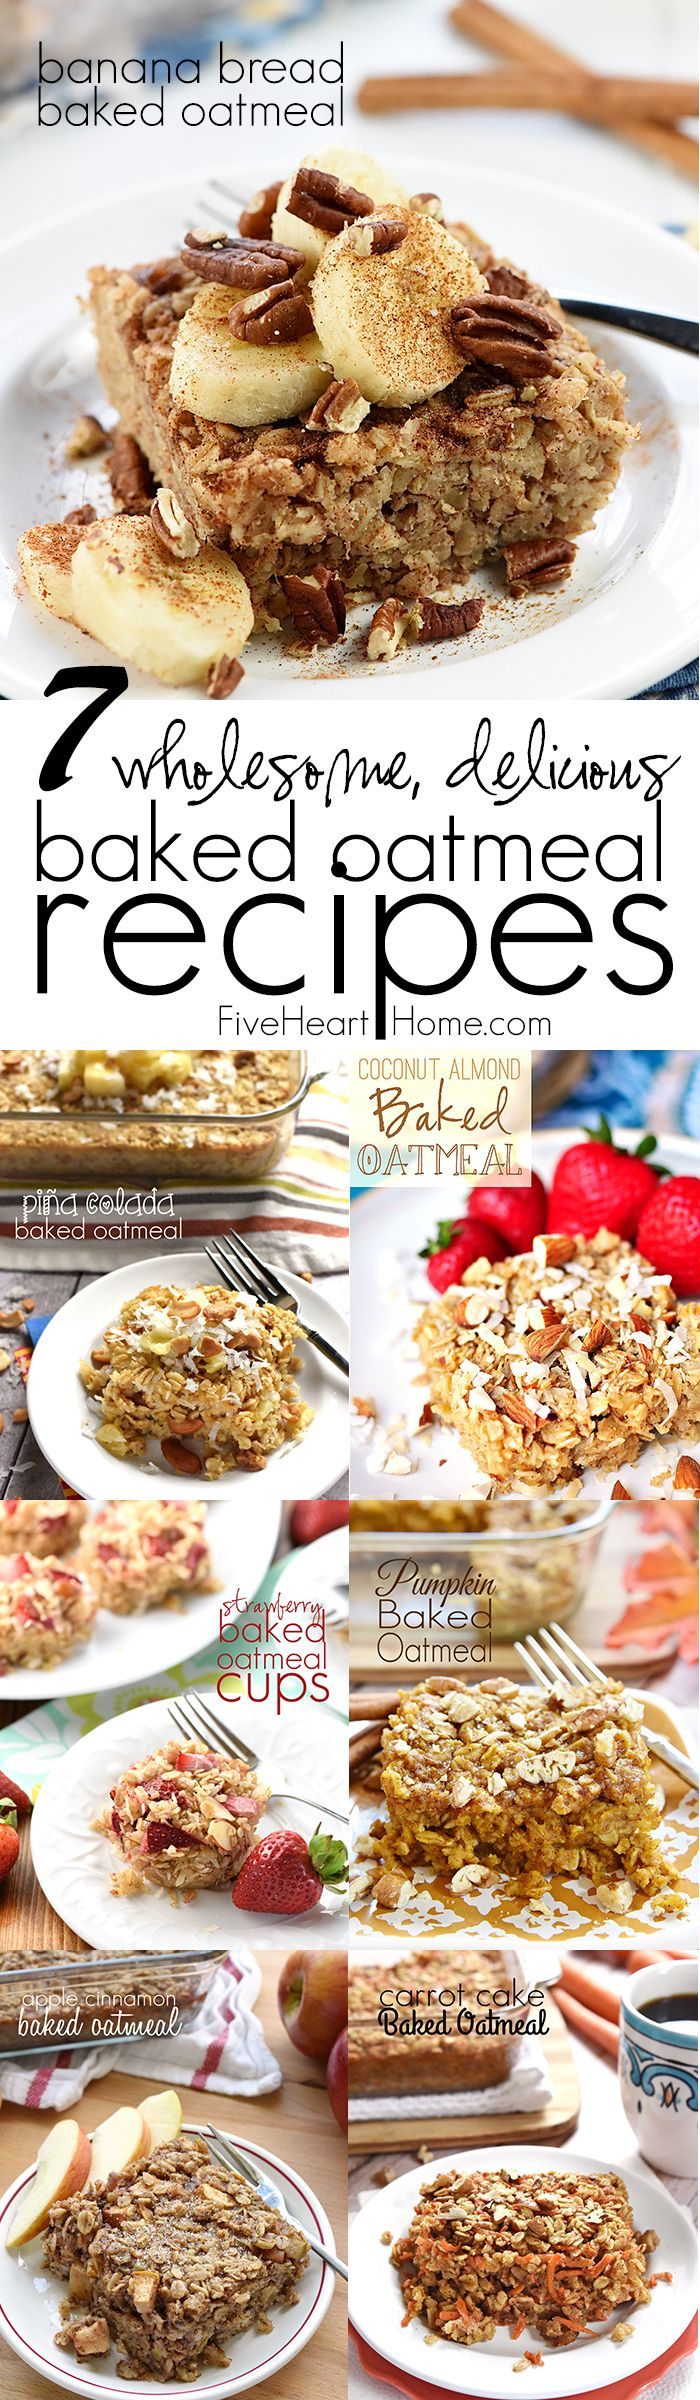 7 Wholesome, Delicious Baked Oatmeal Recipes ~ enjoy baked oatmeal for breakfast in a variety of tasty flavors, including Banana Bread, Piña Colada, Coconut Almond, Strawberry, Pumpkin, Apple Cinnamon, and Carrot Cake! | FiveHeartHome.com